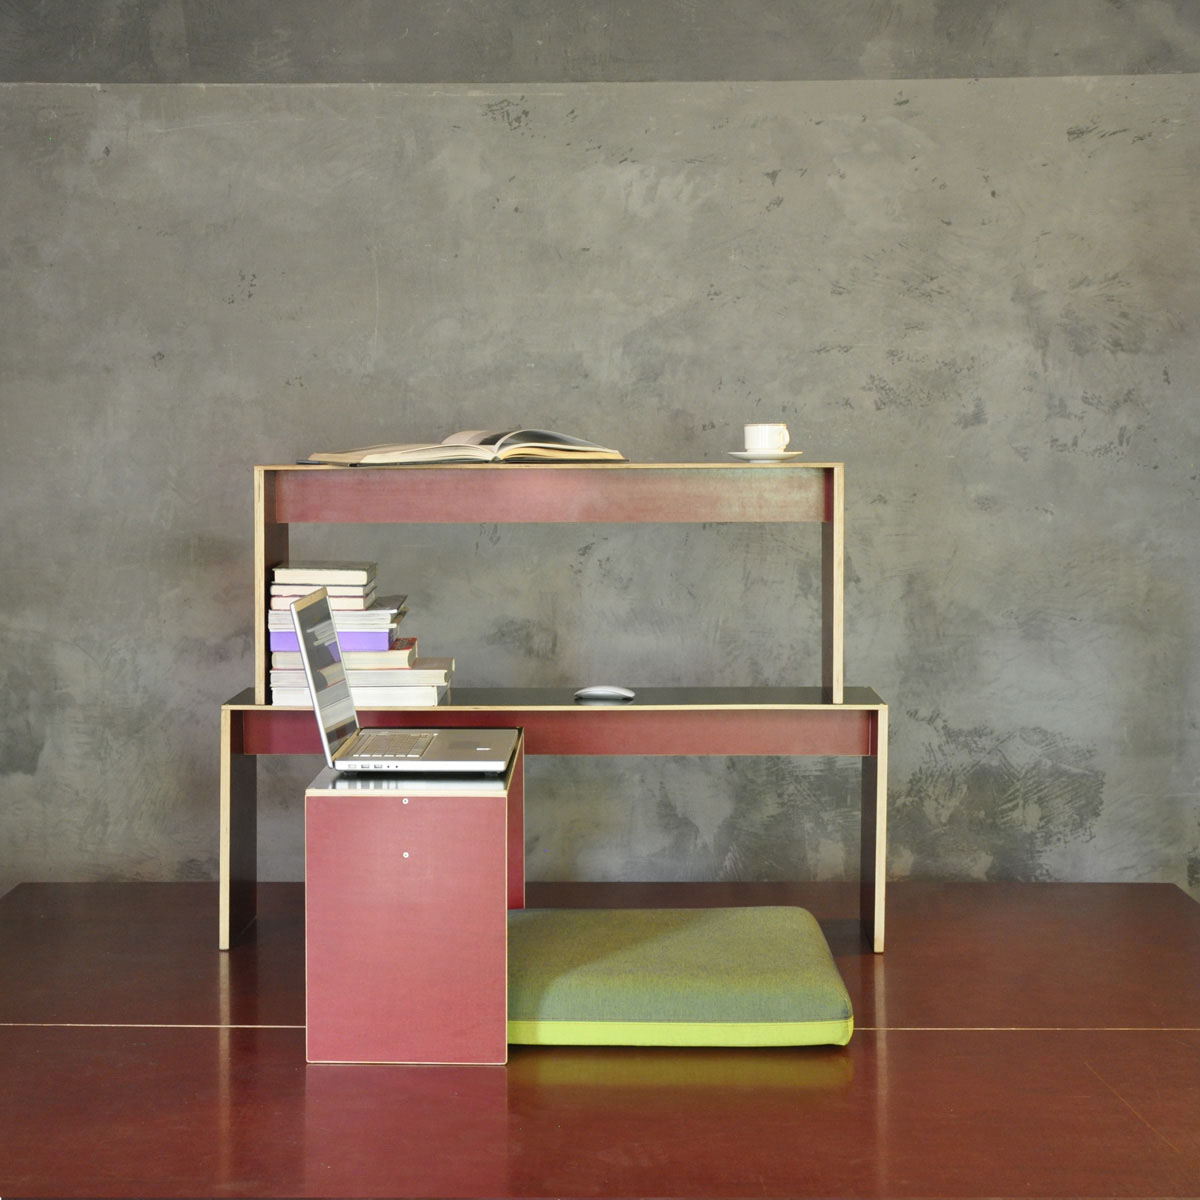 Freydenberg_Modular_Bench_Table_Trip_15.jpg